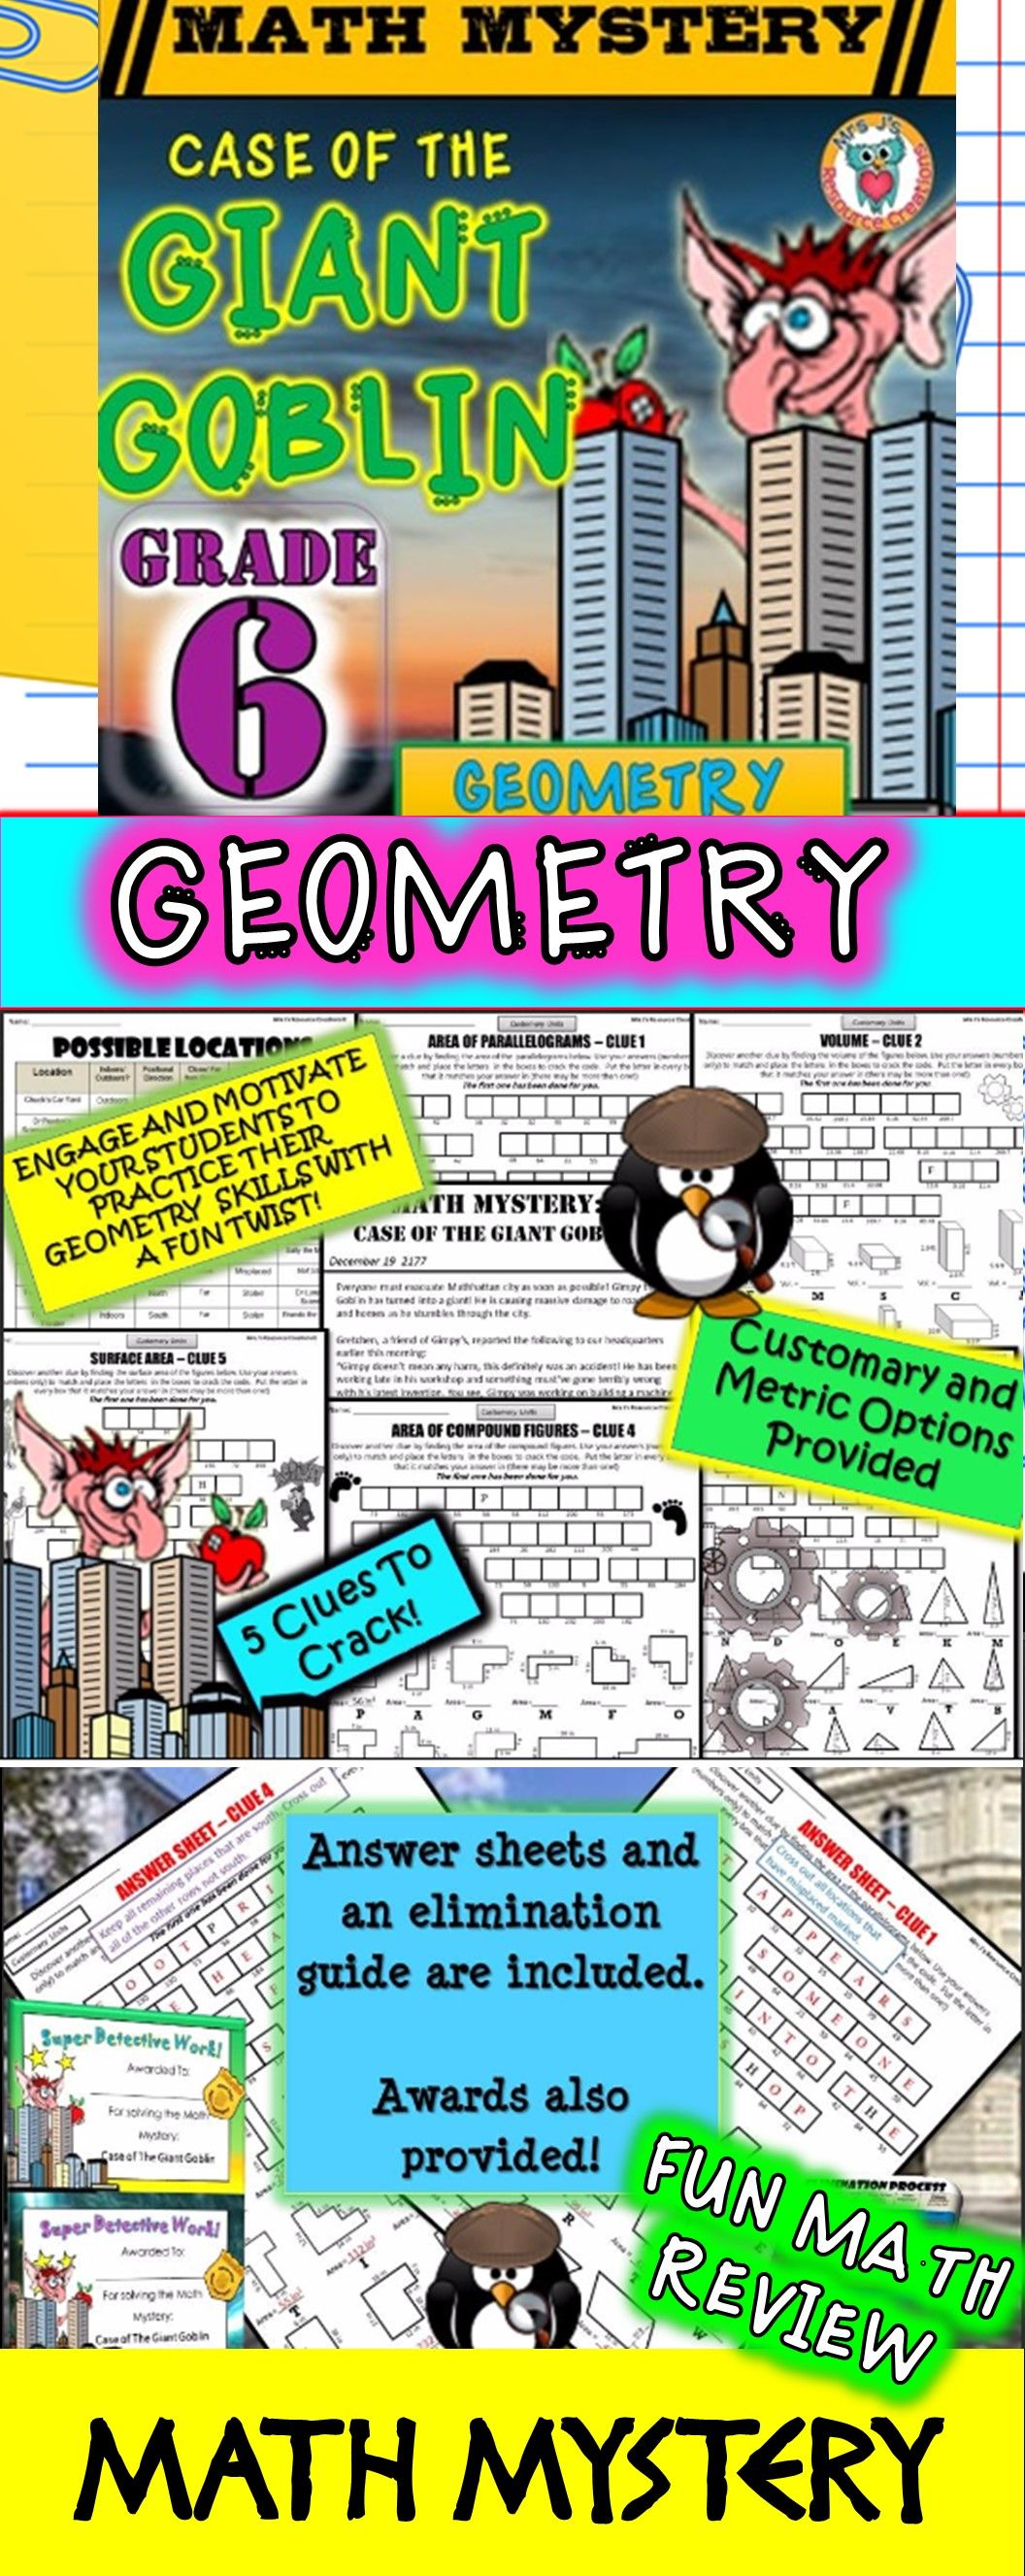 6th grade geometry review math mystery area prisms volume more geometry math mystery case of the giant goblin sixth grade version fun geometry fandeluxe Gallery